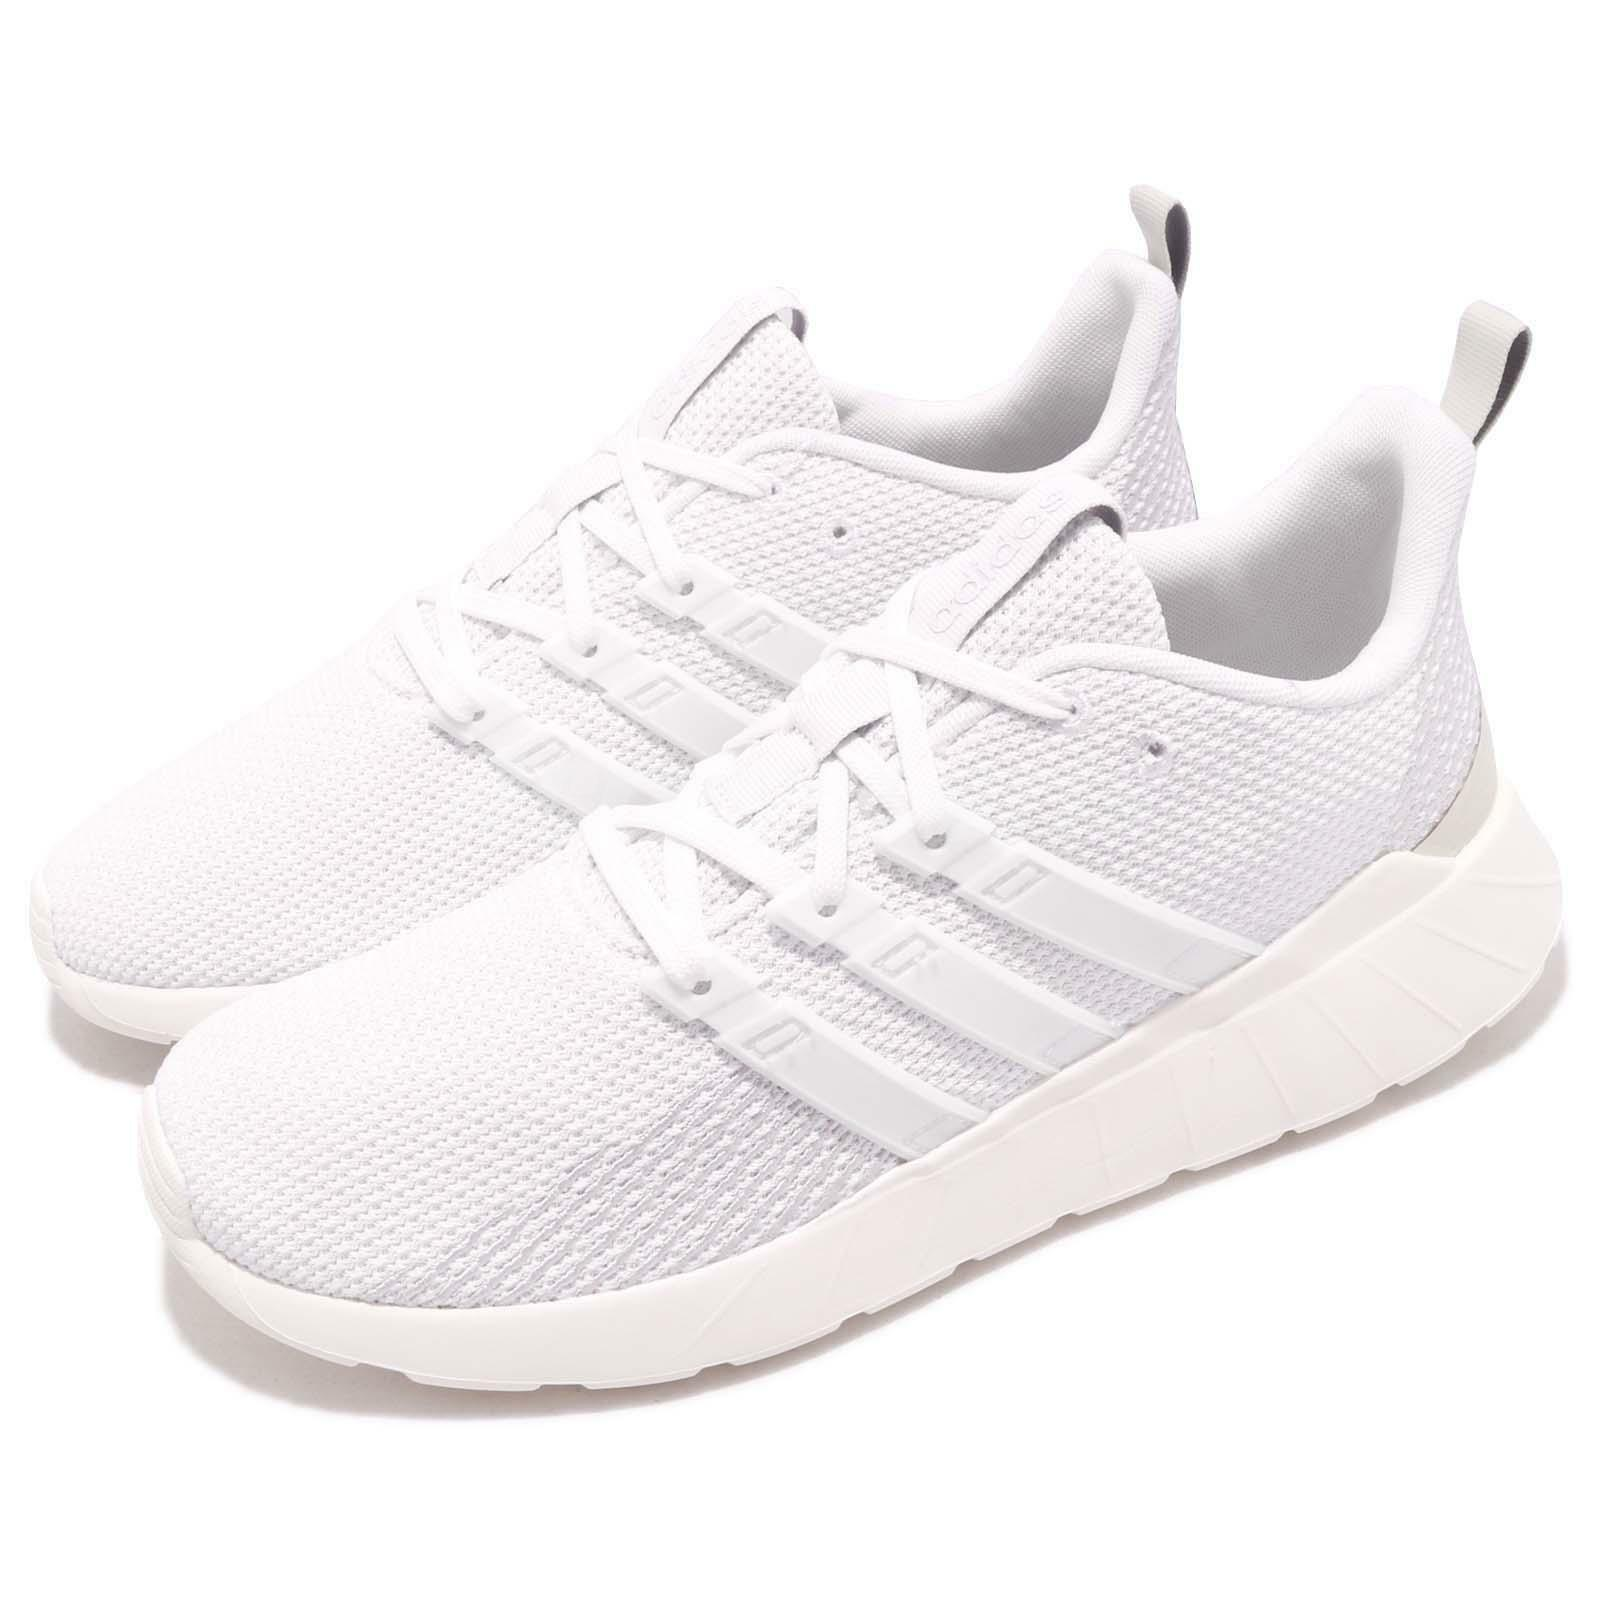 Adidas Neo Questar Flow Raw White Men Running Casual shoes Sneakers F36256